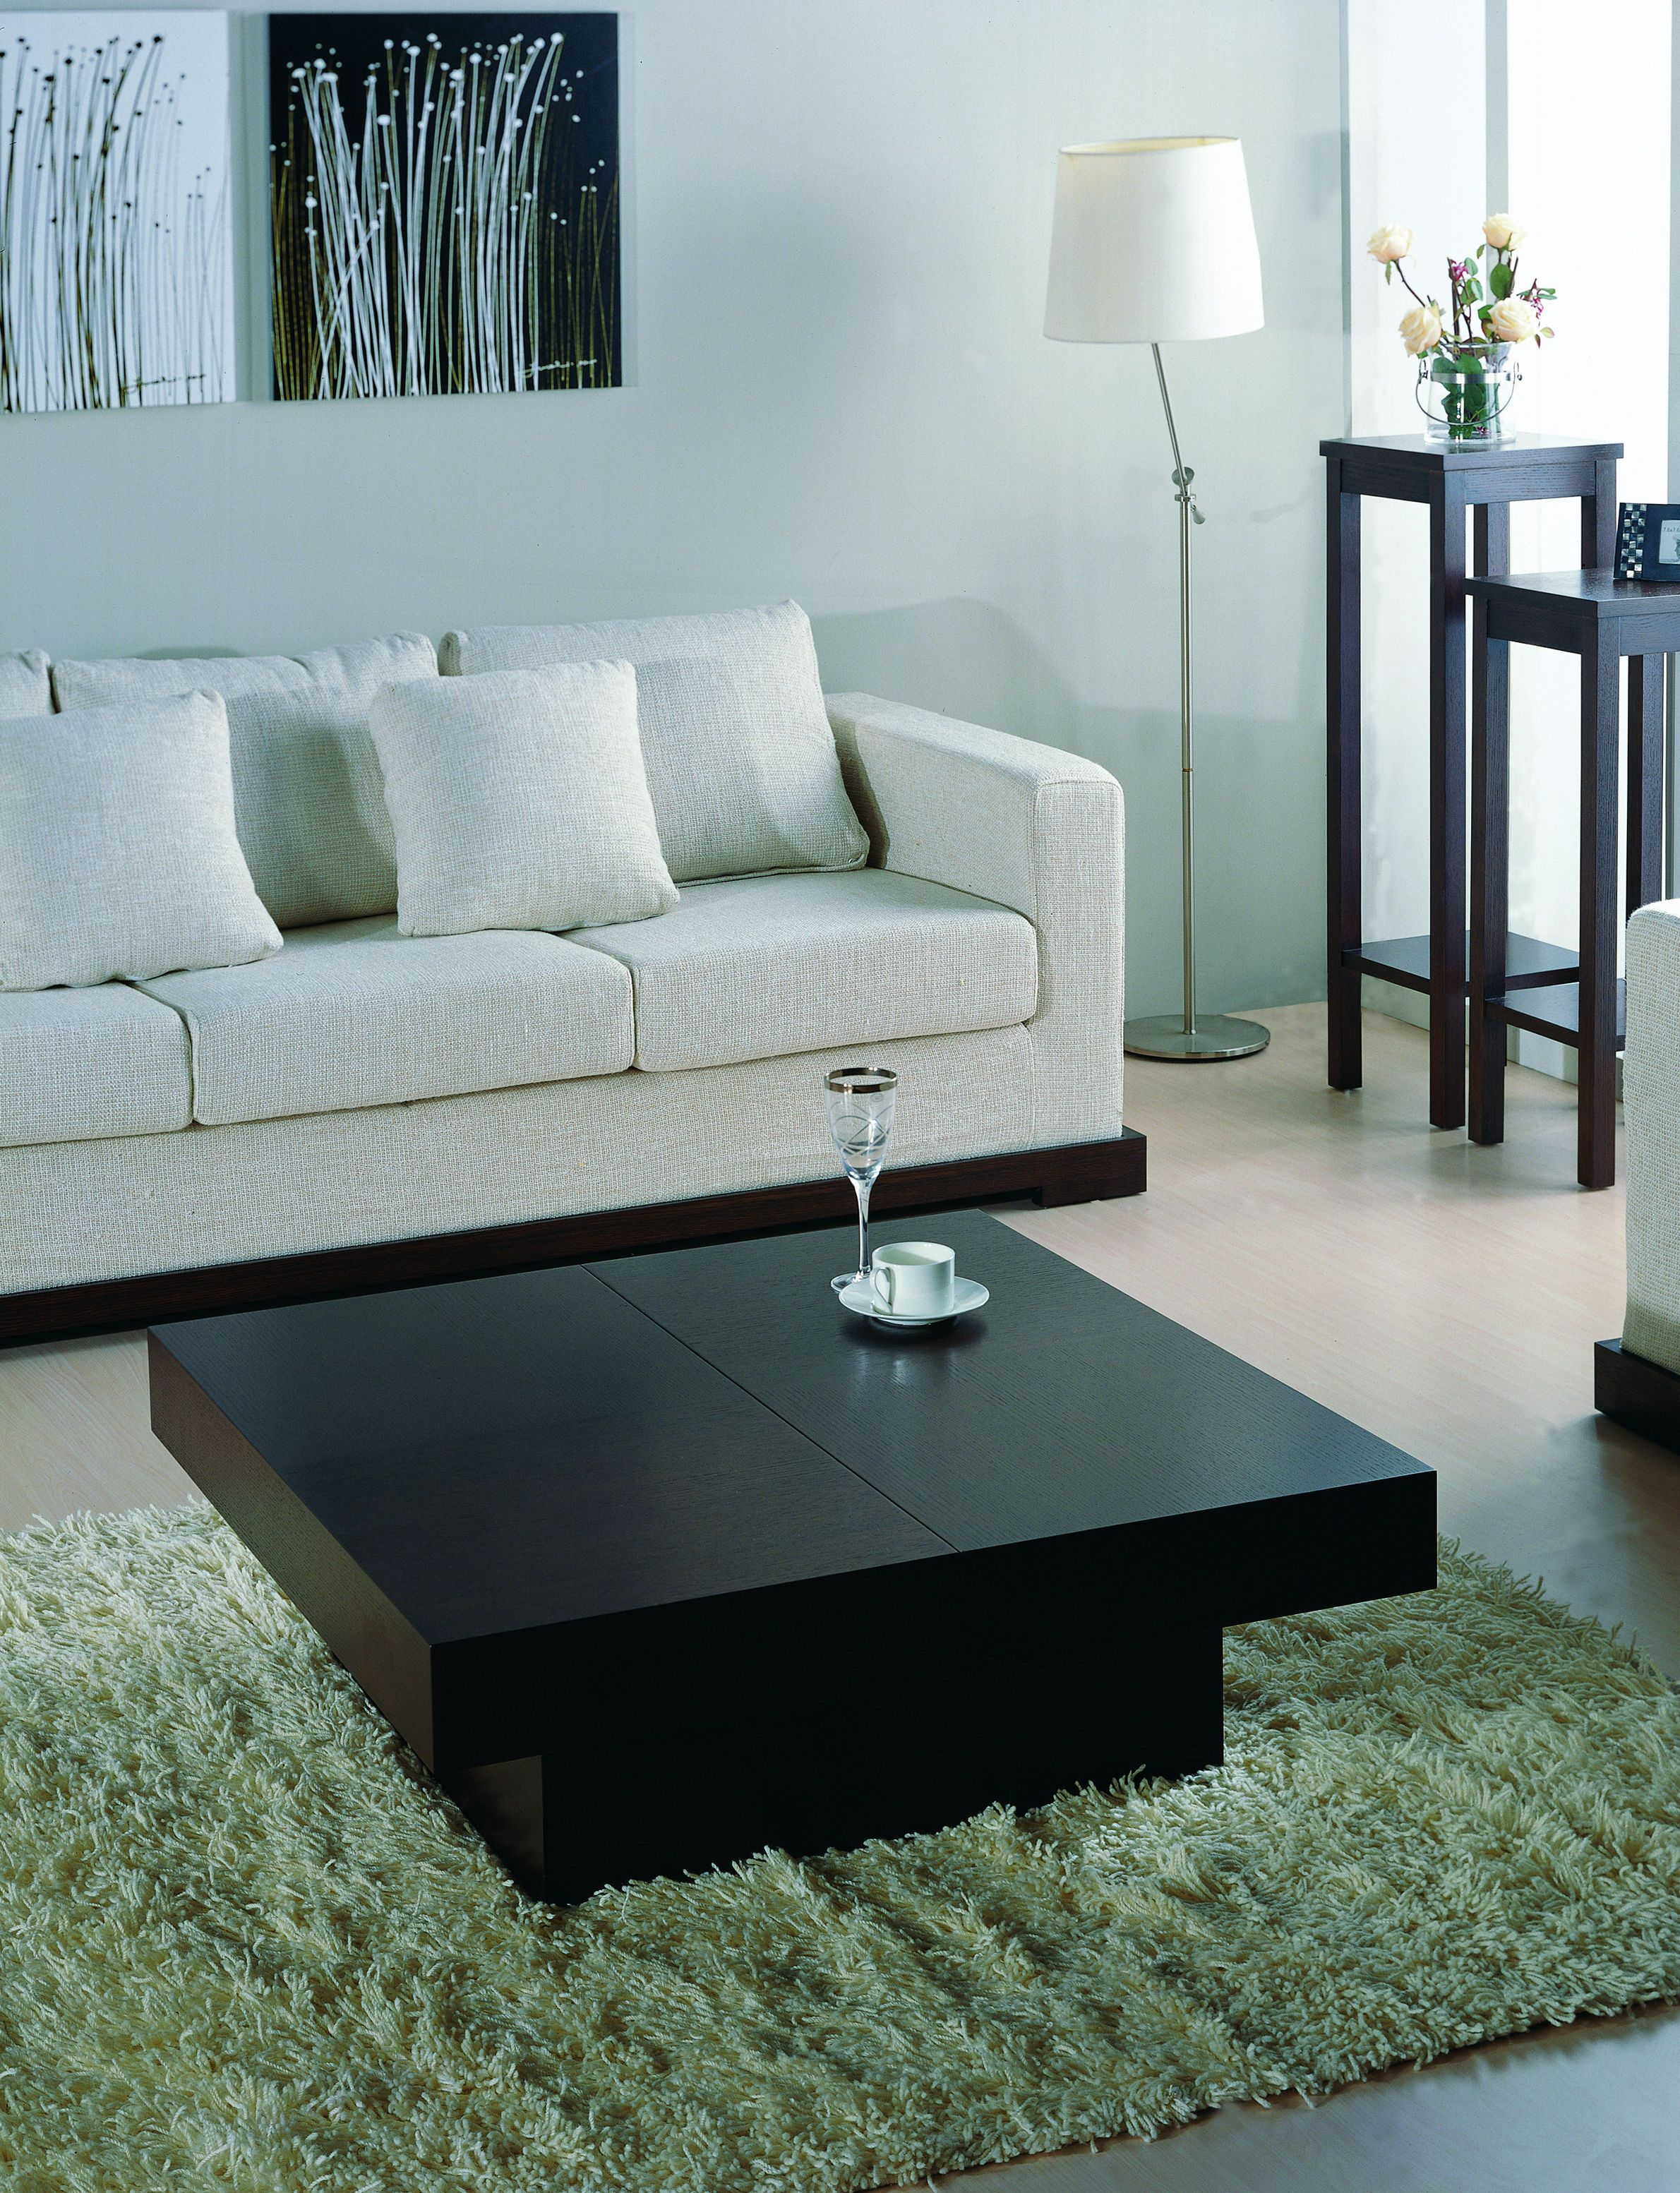 Nile Coffee Table Nile Beverly Hills Furniture Coffee Tables In 2021 Coffee Table Furniture Coffee Table With Storage [ 3107 x 2380 Pixel ]